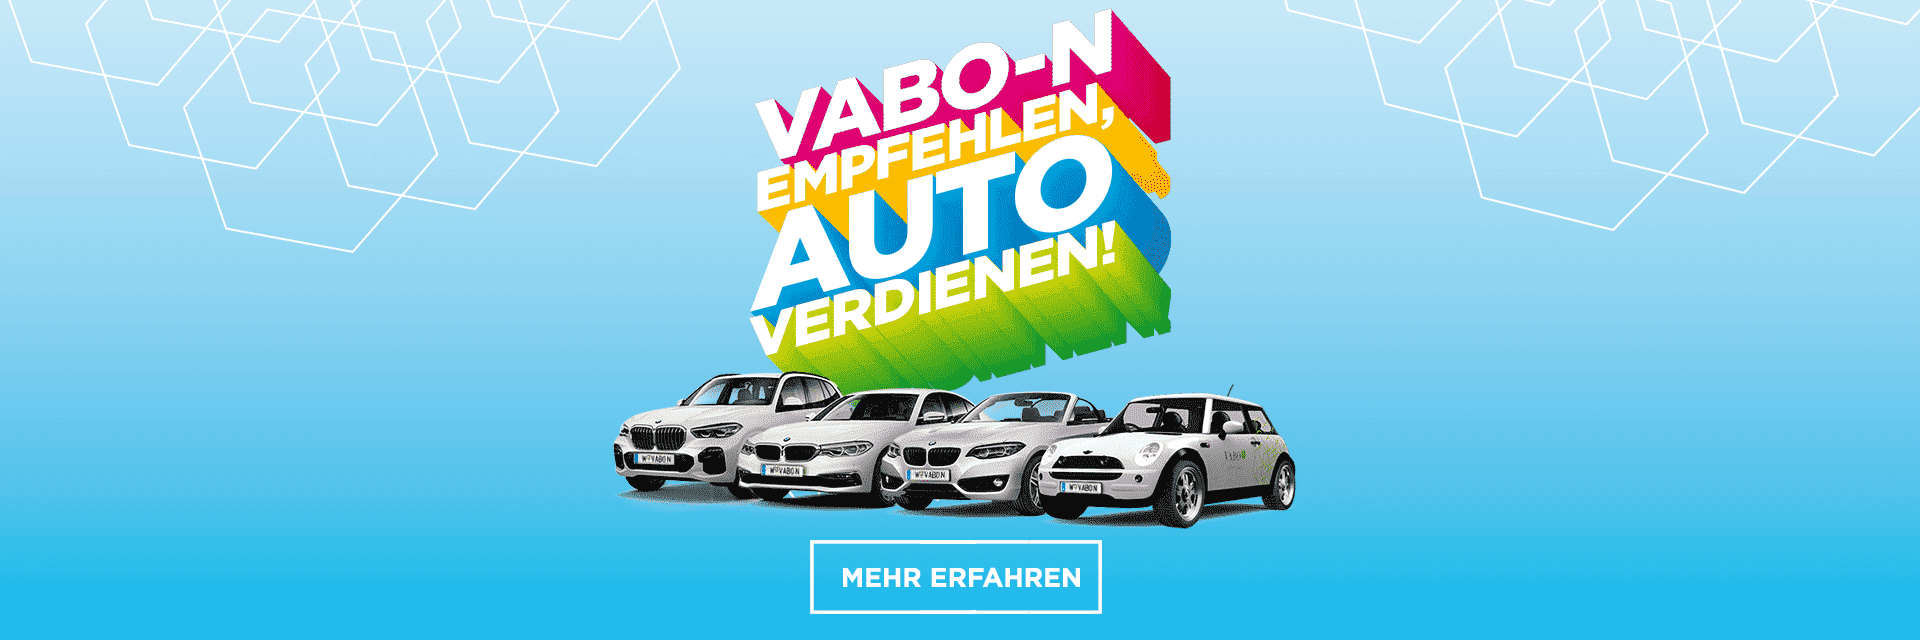 VABO N AKTION HEADER CAR BONUS V